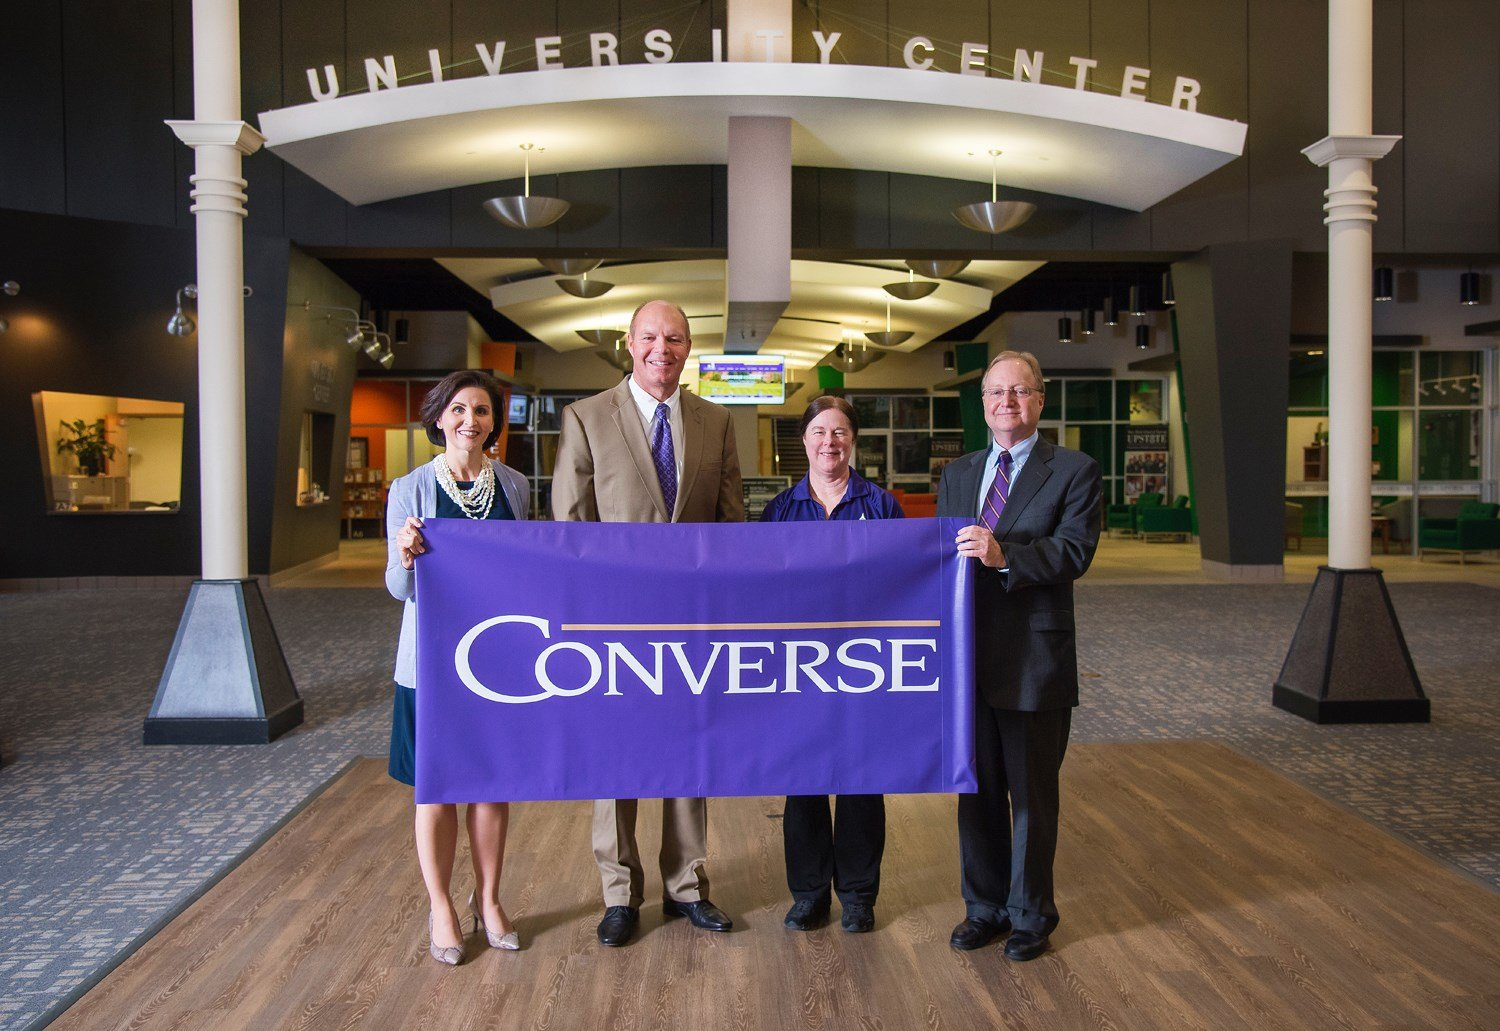 Converse at UCG (source: Converse College)